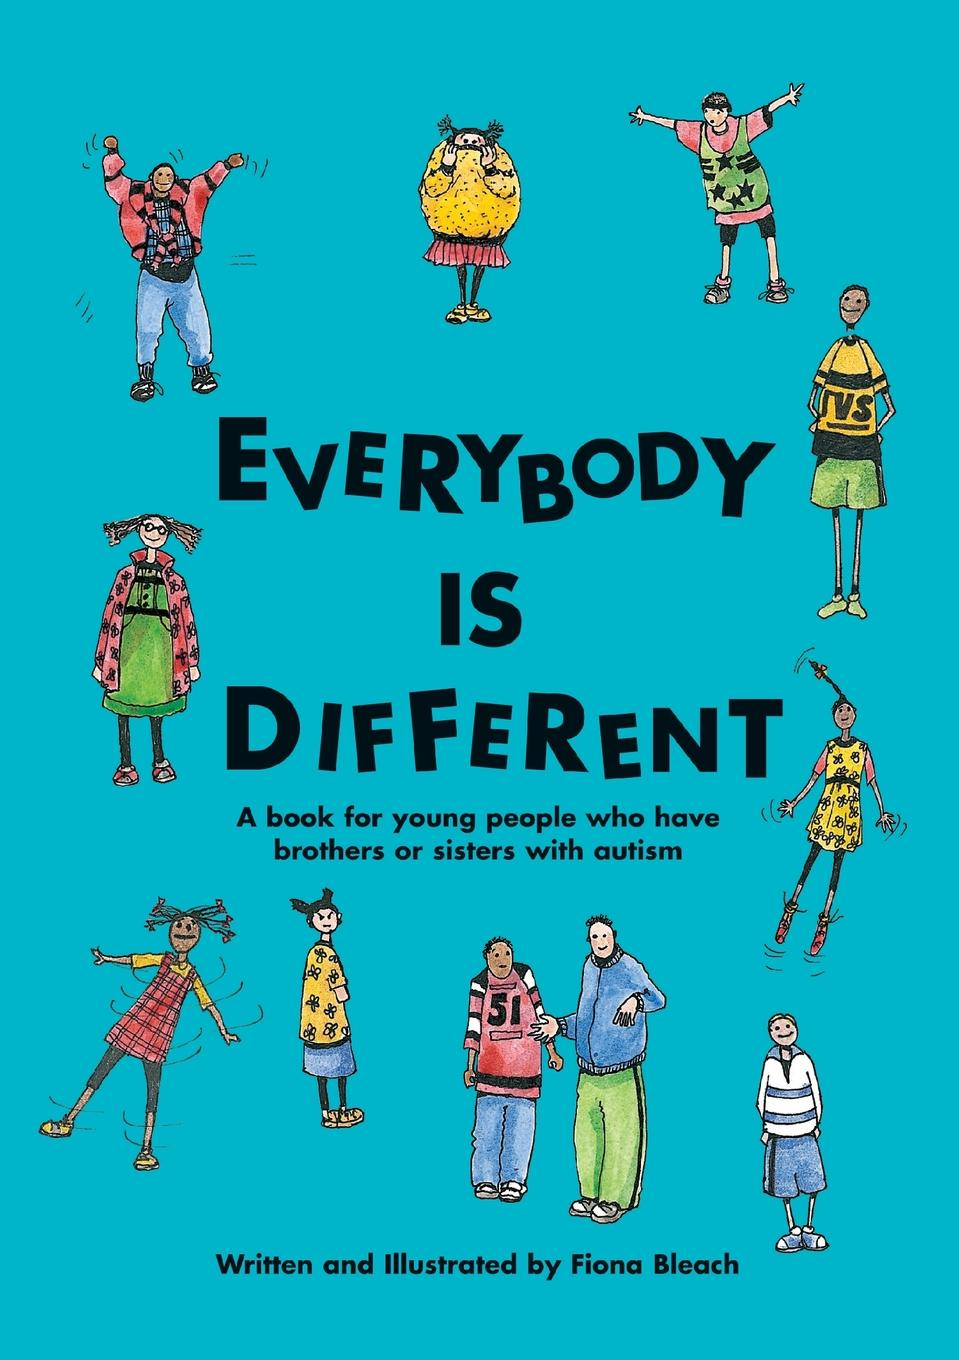 цена Fiona Bleach Everybody is Different. A book for young people who have brothers or sisters with autism в интернет-магазинах